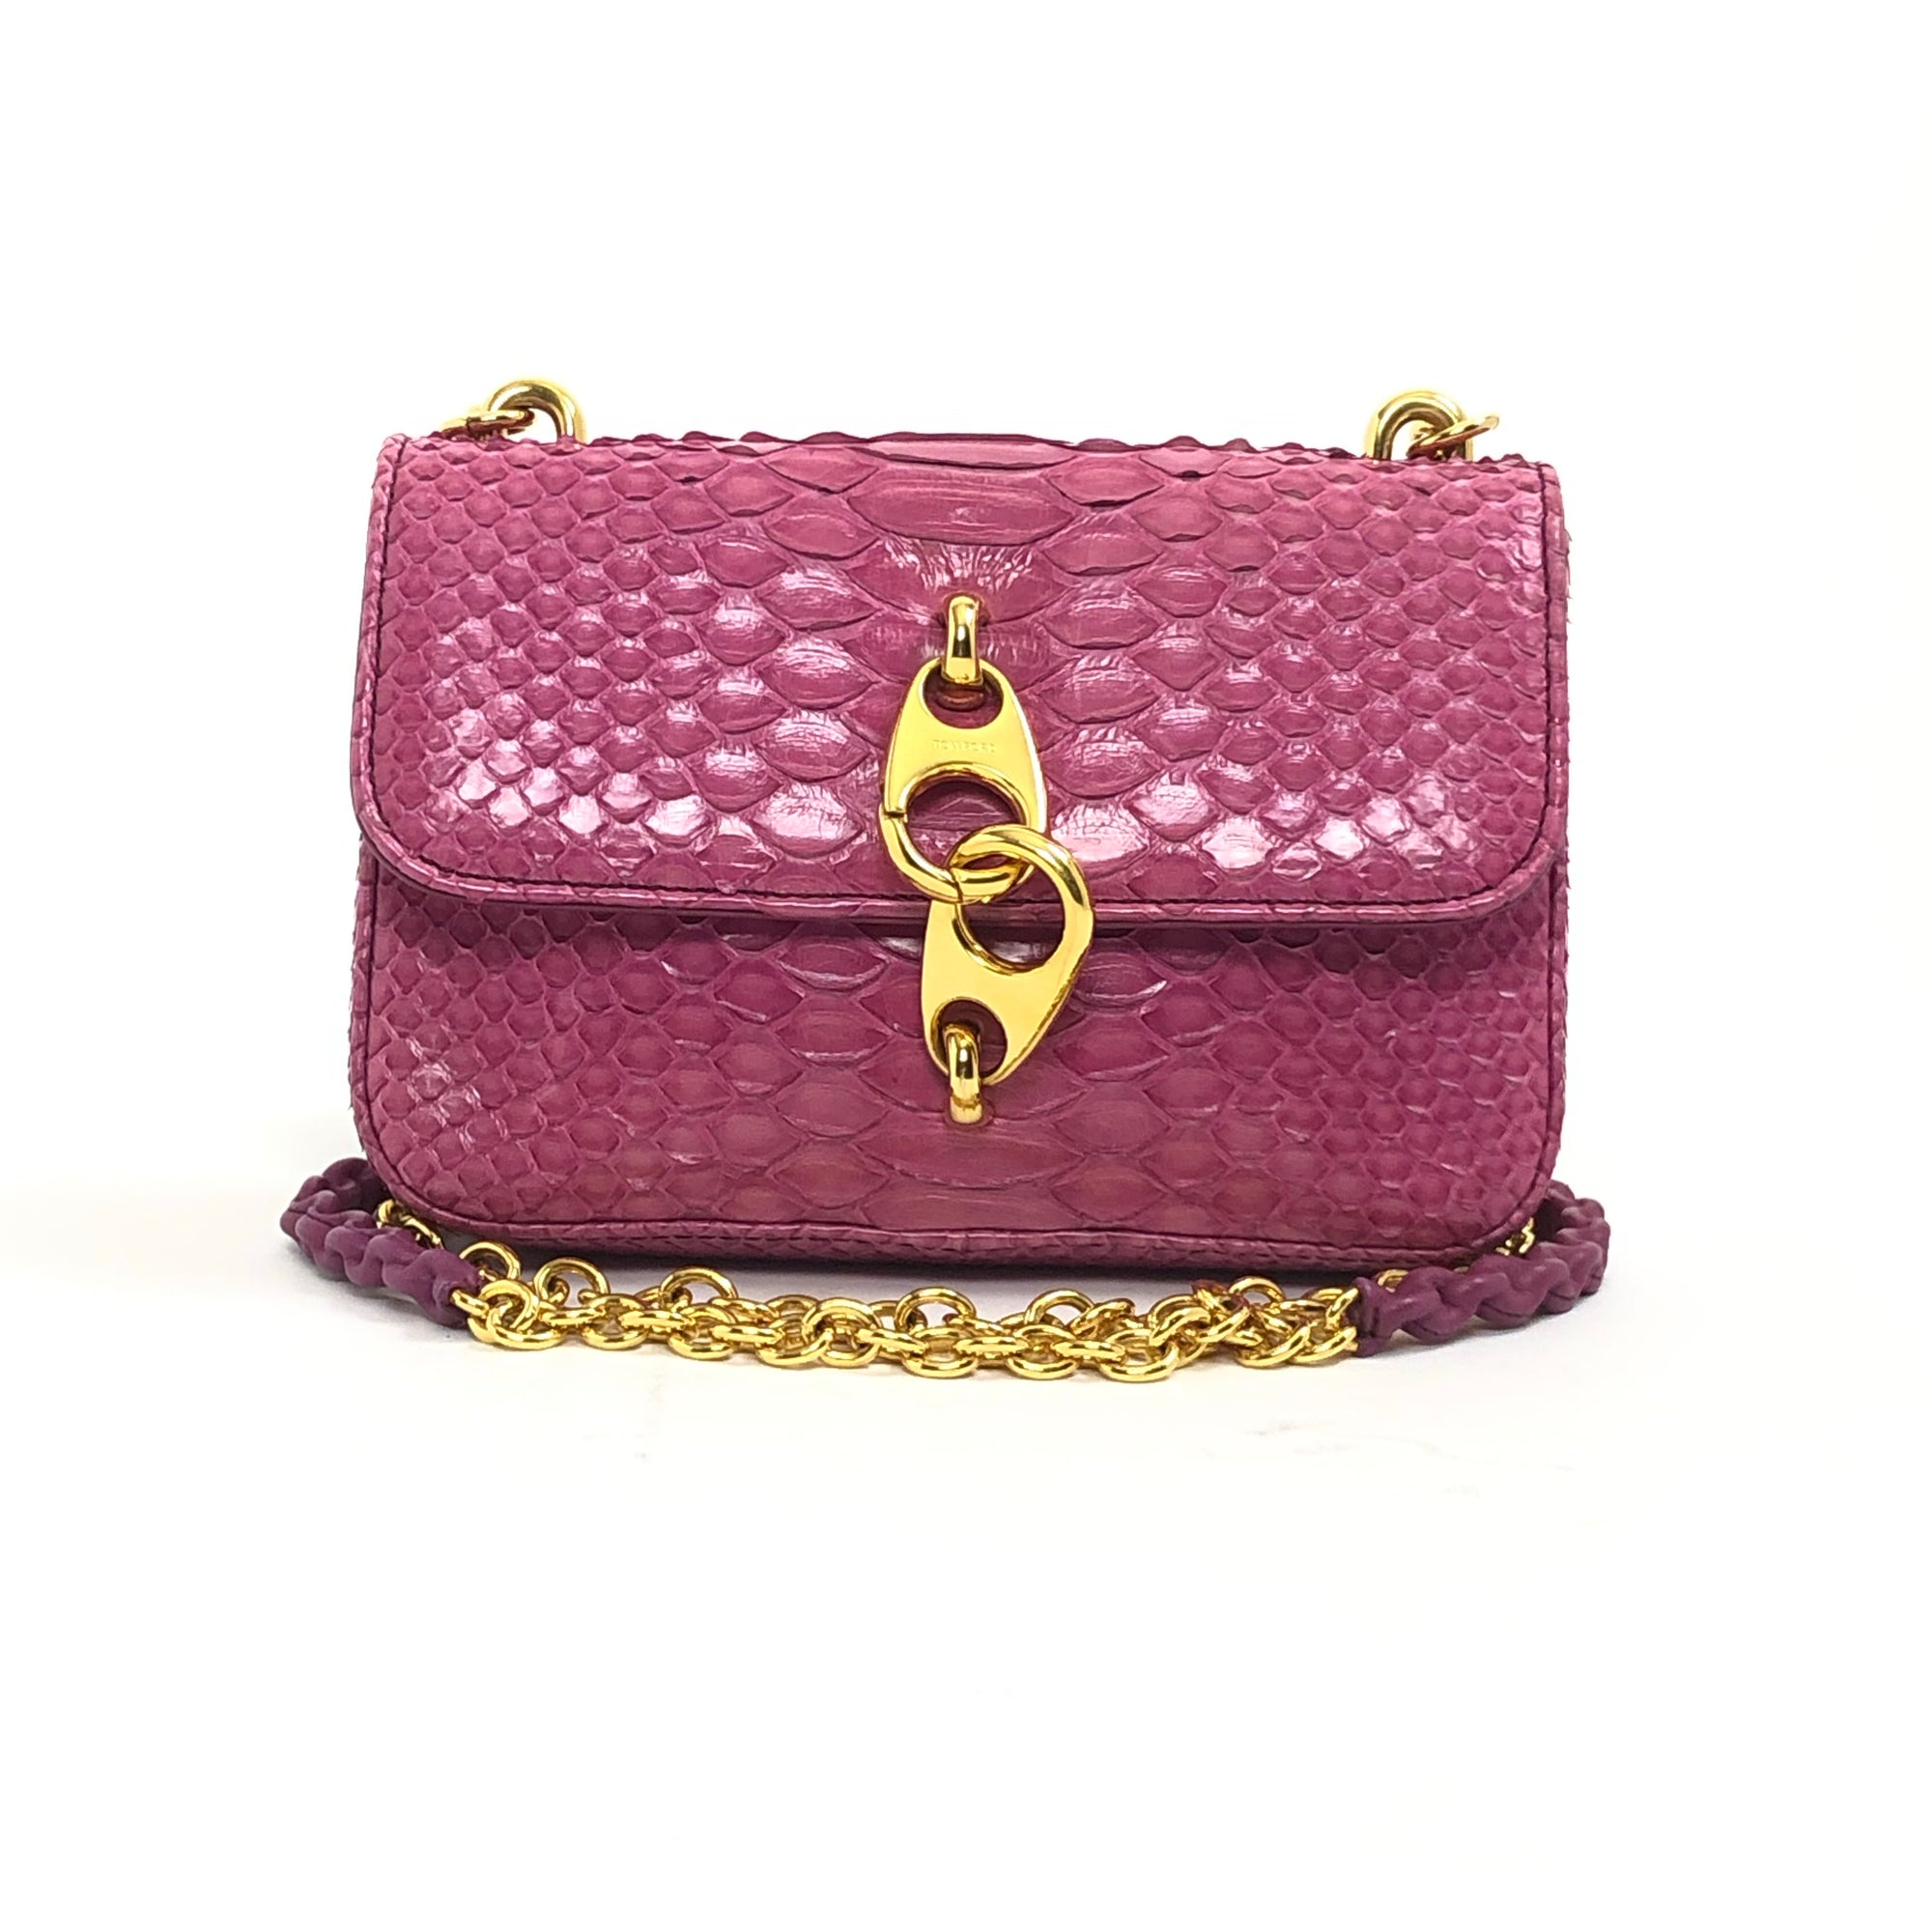 ladiesoflux - Tom Ford Python Carine Crossbody Bag - Ladies Of Lux - Handbag